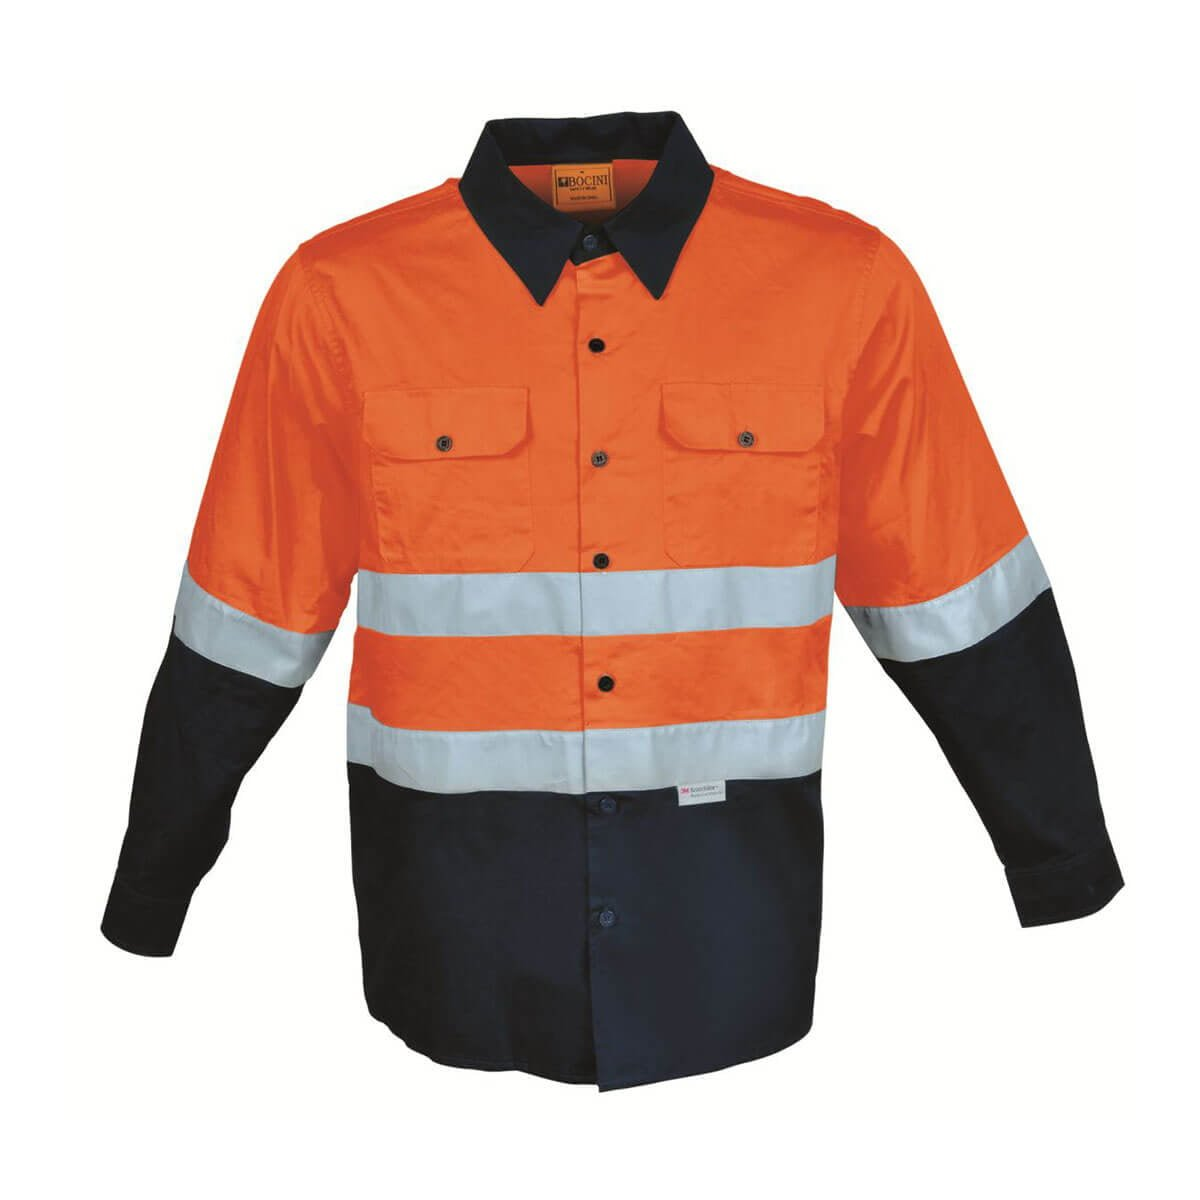 HI-VIS L/S COTTON DRILL SHIRT WITH TAPE-Orange / Navy